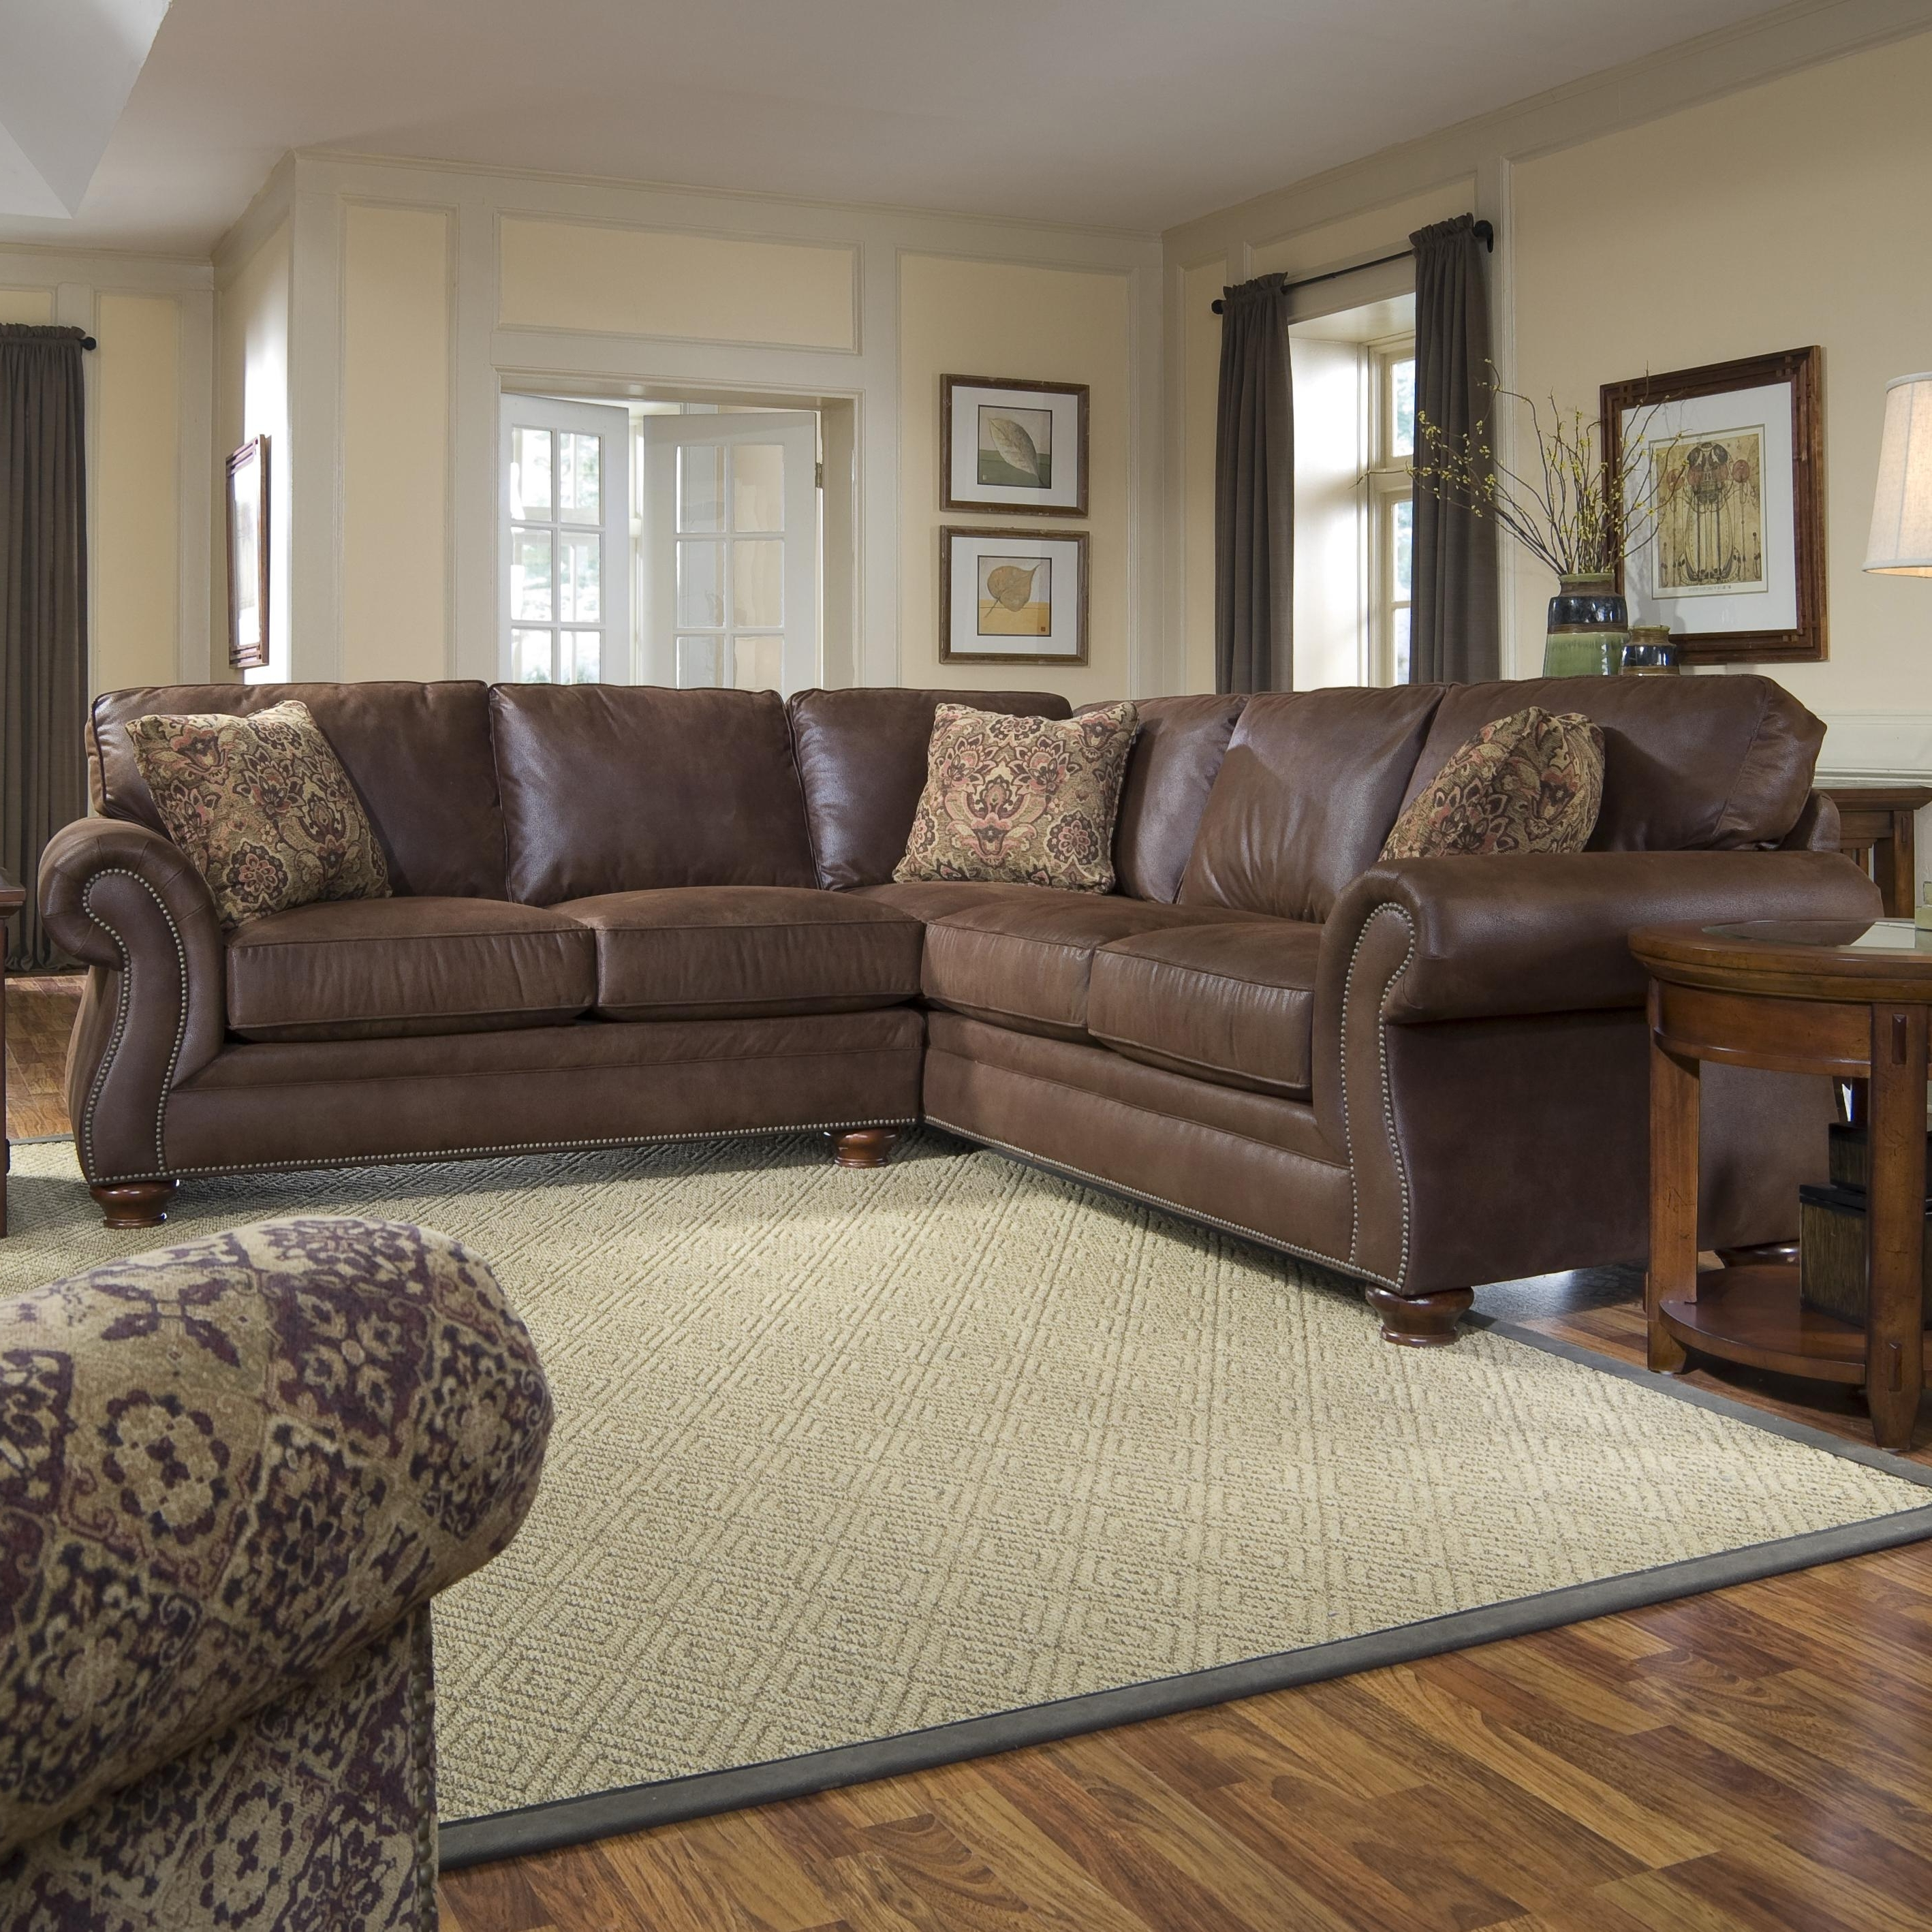 Most Up To Date Broyhill Sectional Sofas Intended For Broyhill Furniture Laramie 3 Piece Sectional Sofa (View 10 of 20)